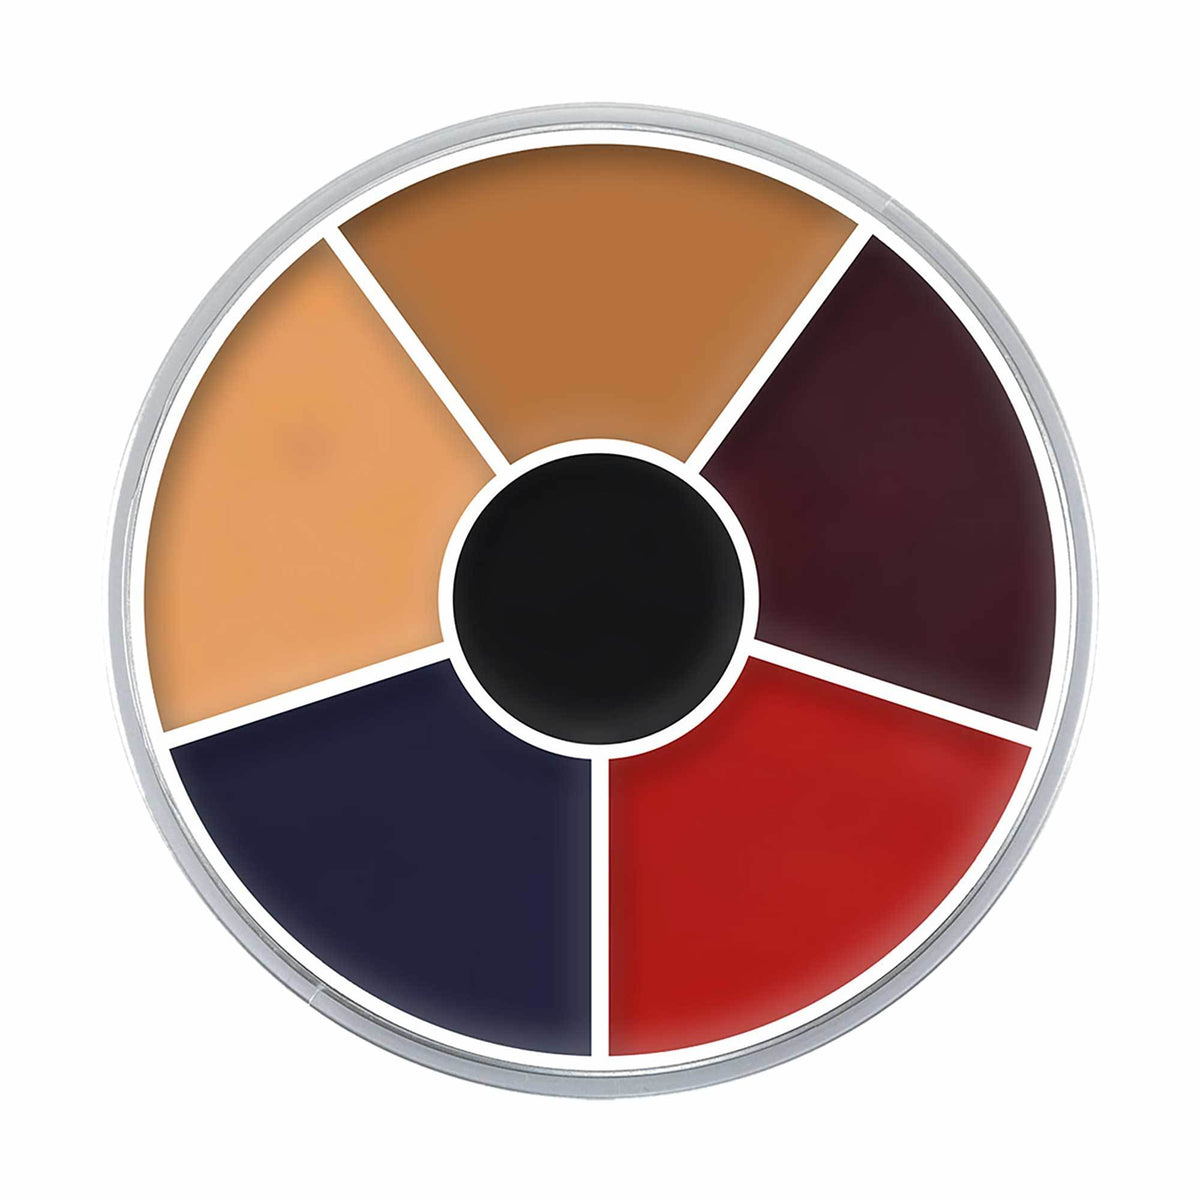 Kryolan SUPRACOLOR Cream Color Circles